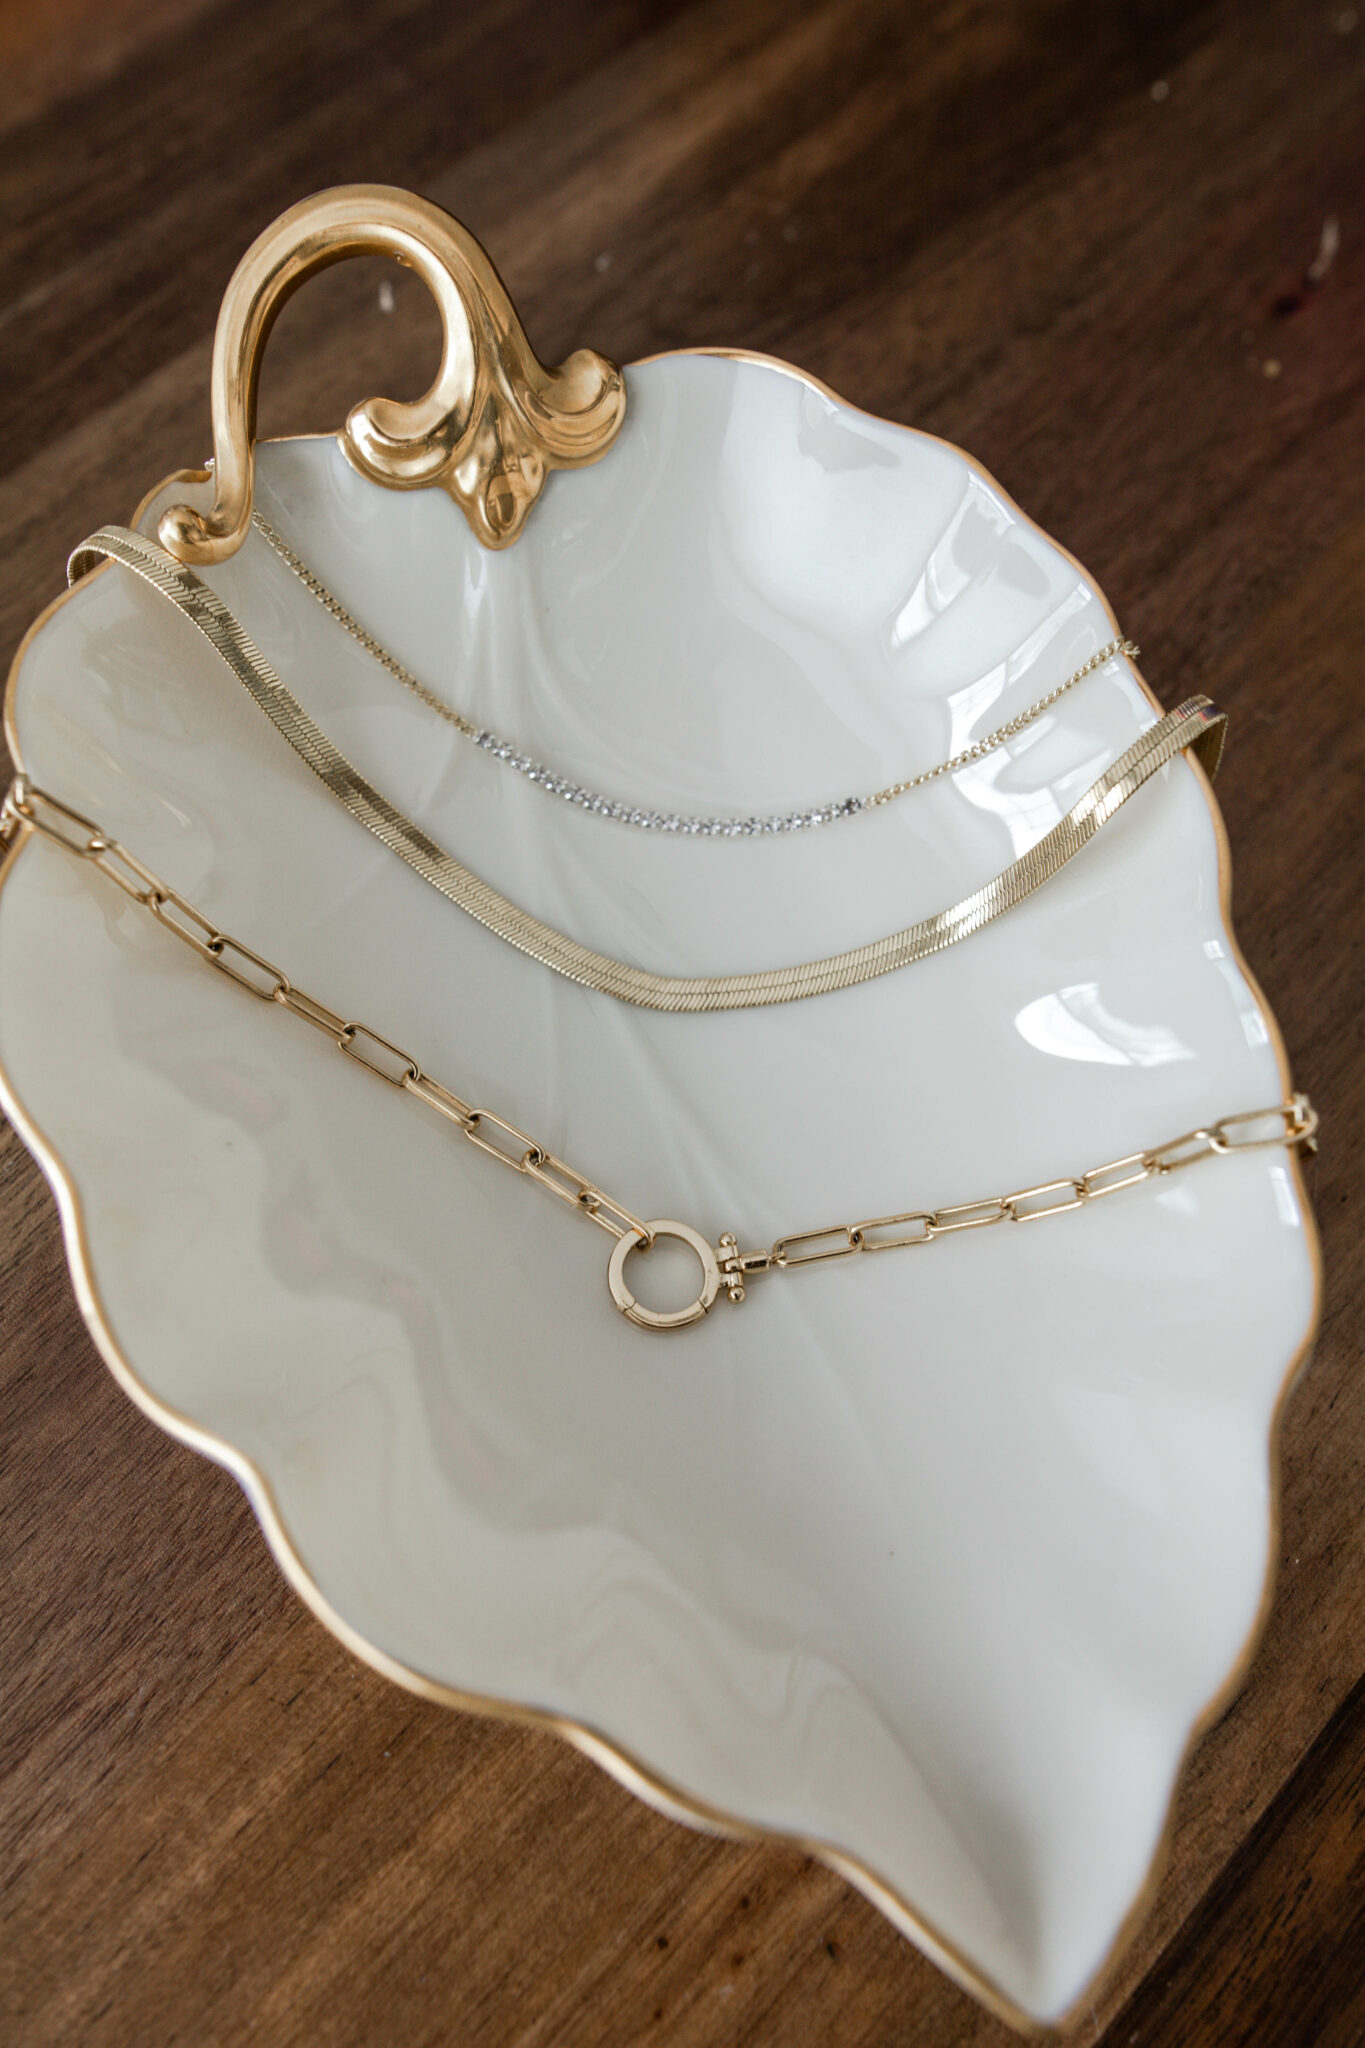 Gorjana Stacking Necklaces by popular Chicago fashion blog, Glass of Glam: image of Gorjana Stacking Necklaces in a white porcelain dish.